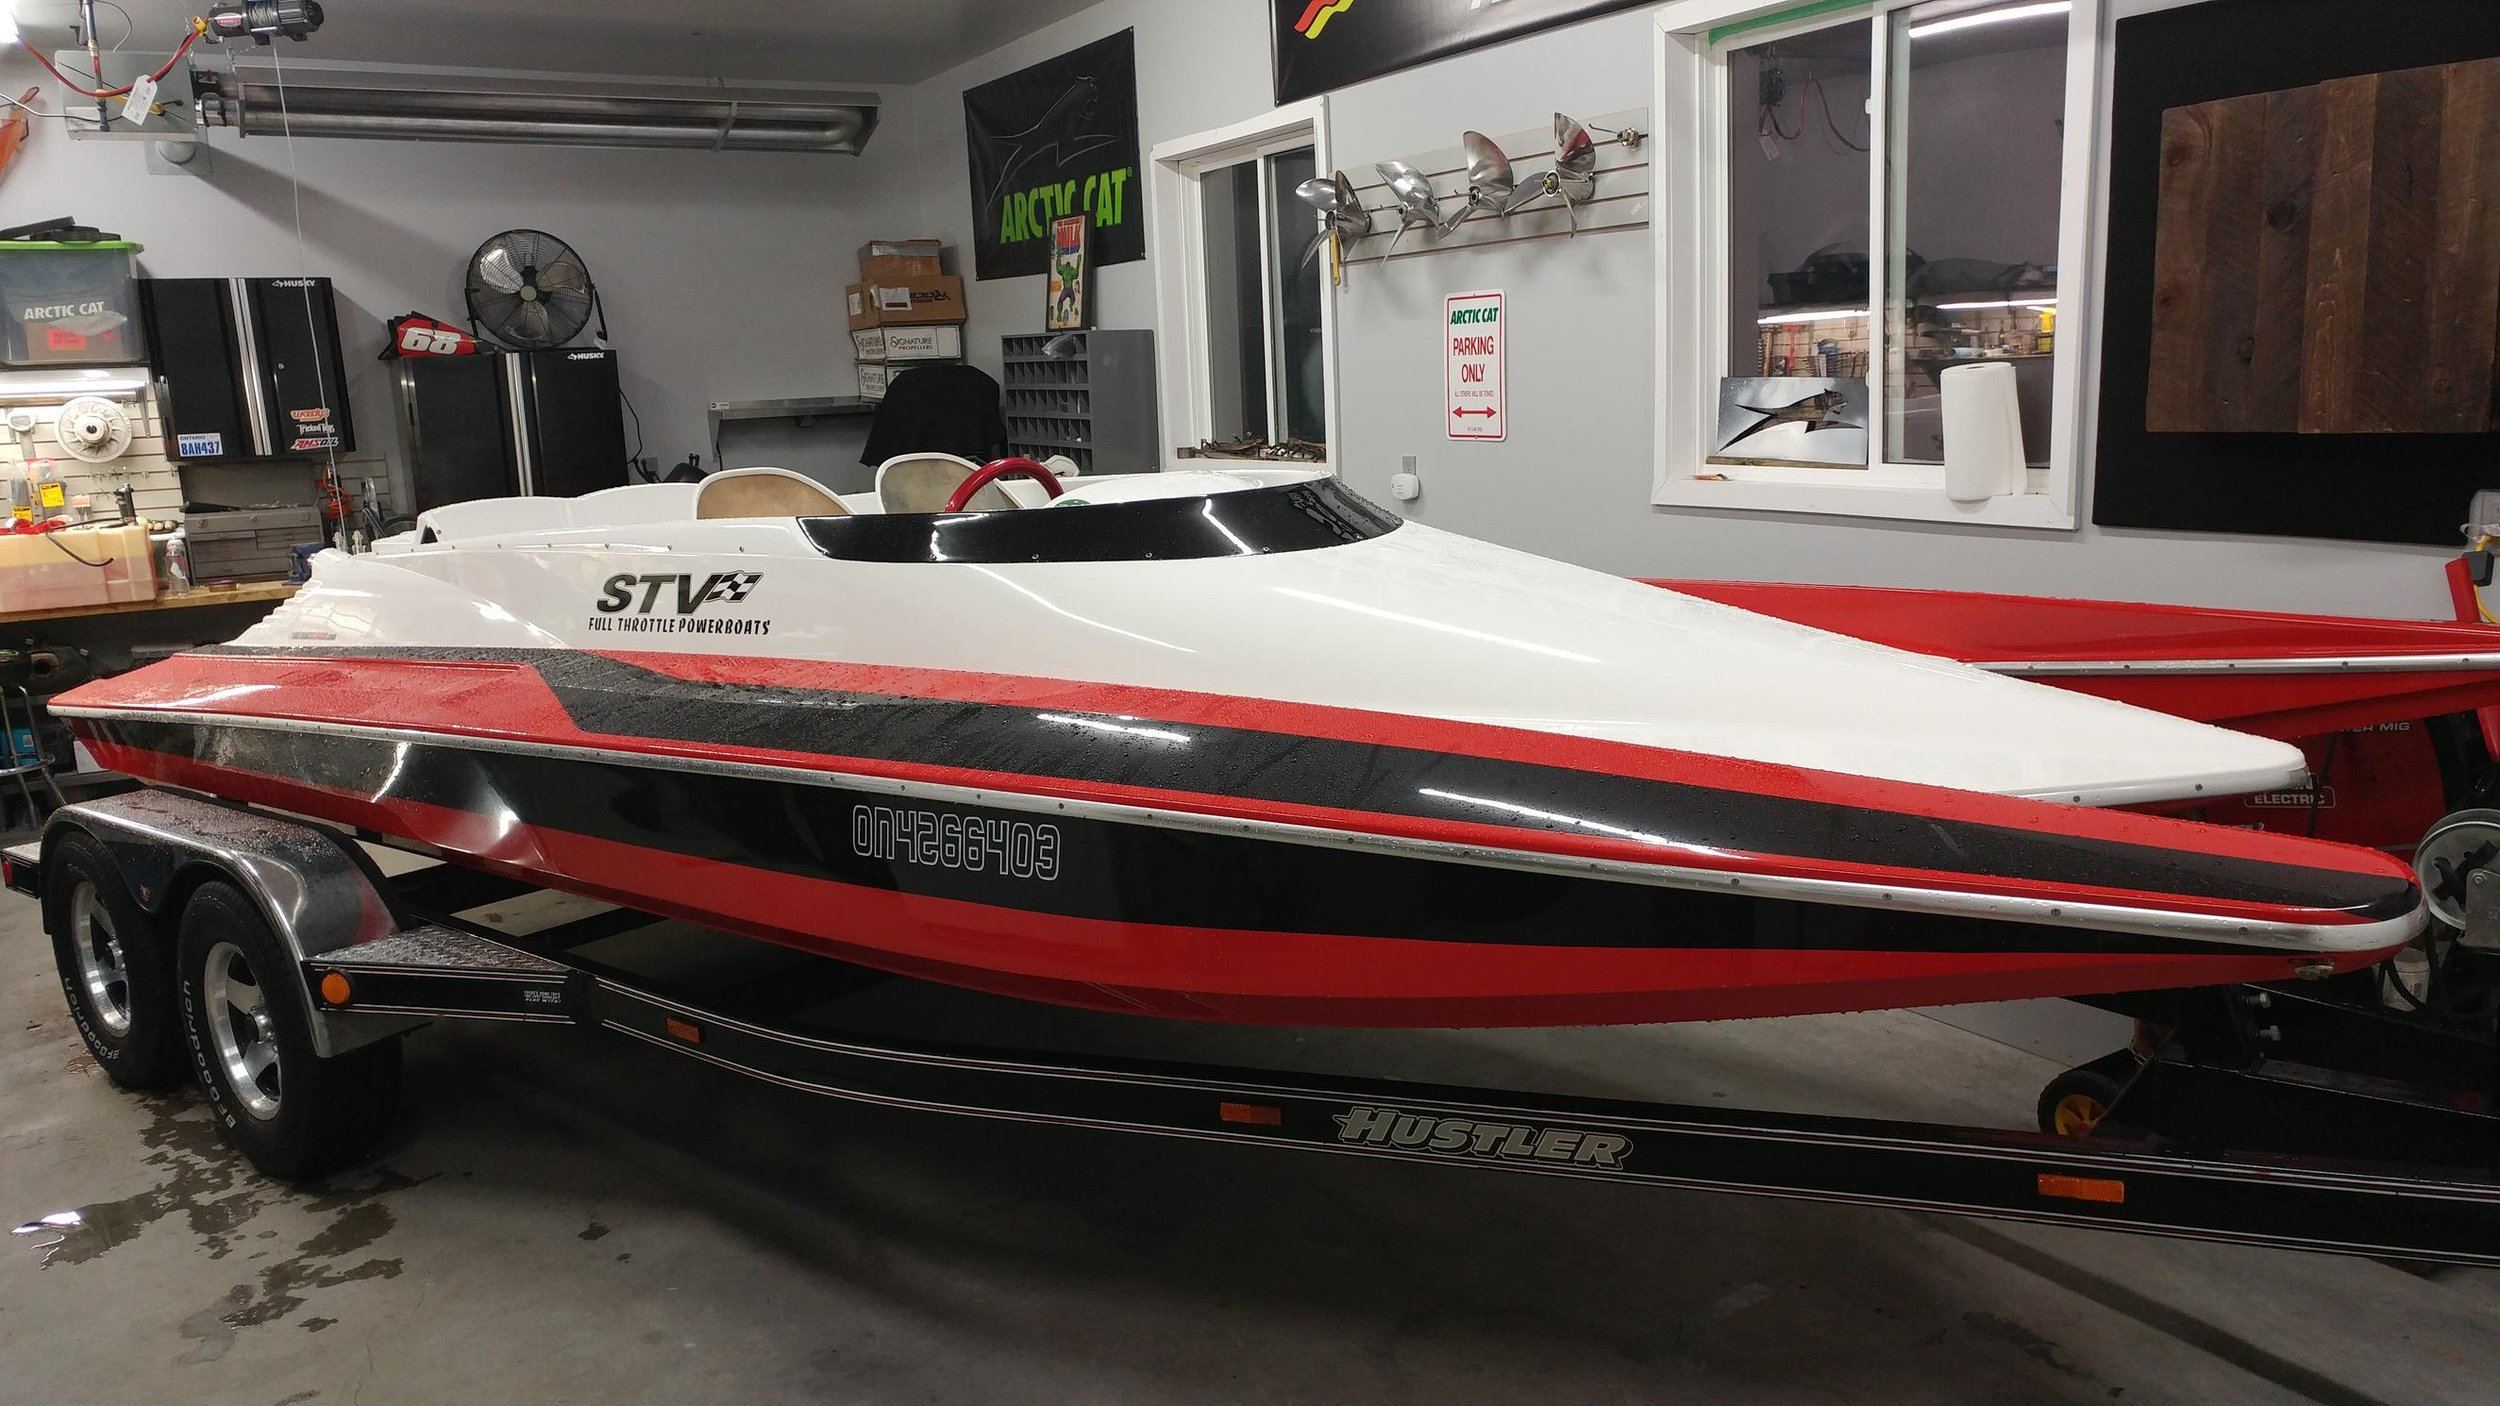 Full Throttle Powerboats out of Florida has taken the torch in building these beautiful boats. The right materials and attention to detail make these some of the lightest and quickest tunnels you can buy.